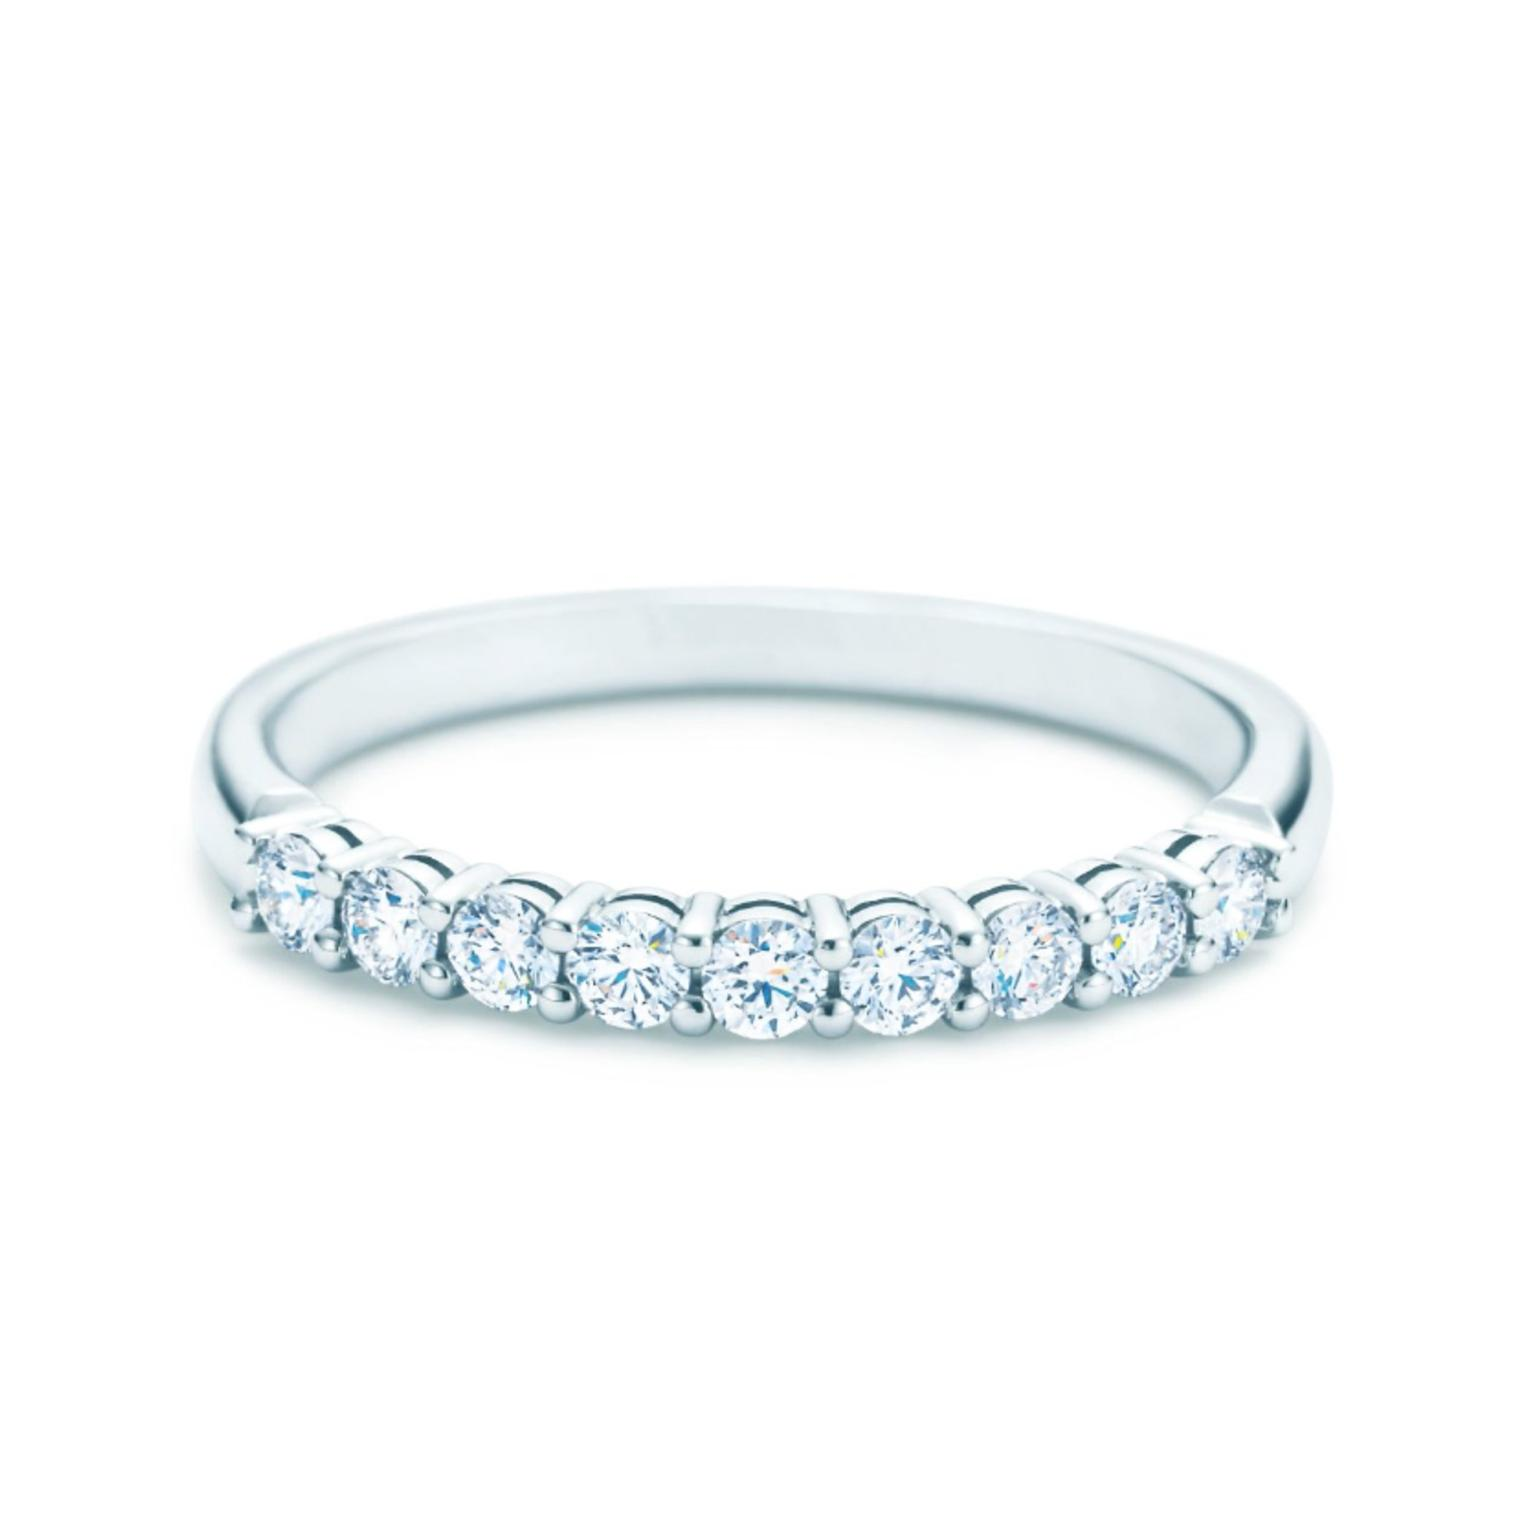 a diamonds rose pink ring diamond furst the french thin eternity band with setting gold france bands all sapphires products around